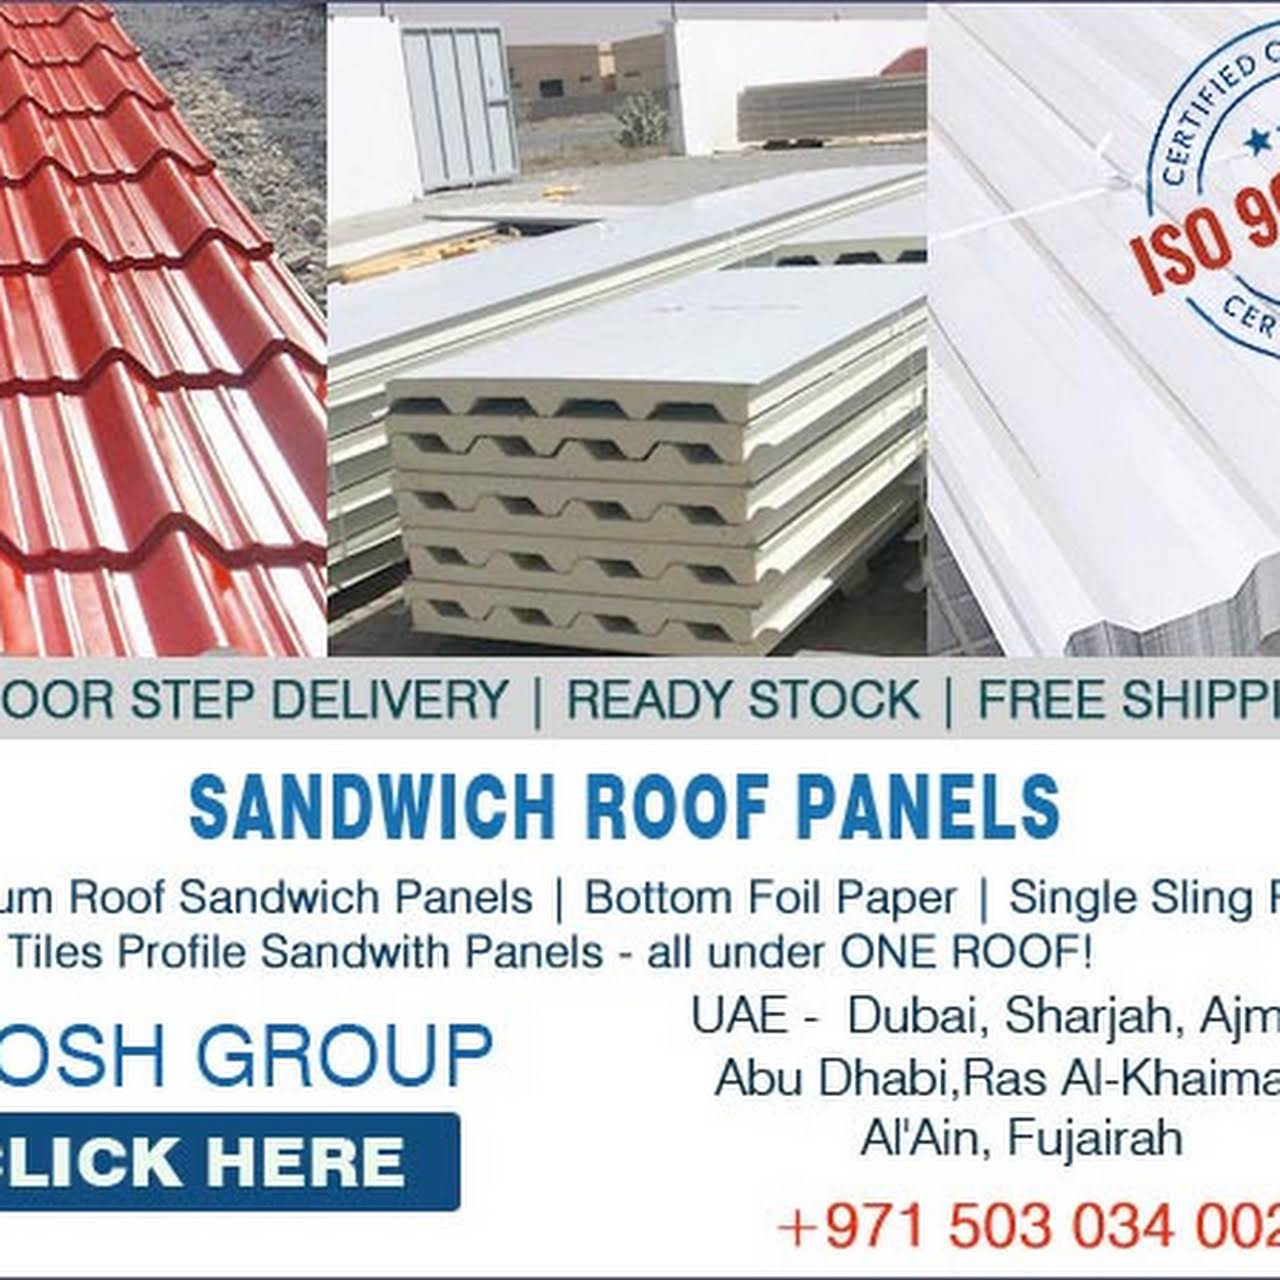 Ghosh Group - A growing business house of Steel & Power